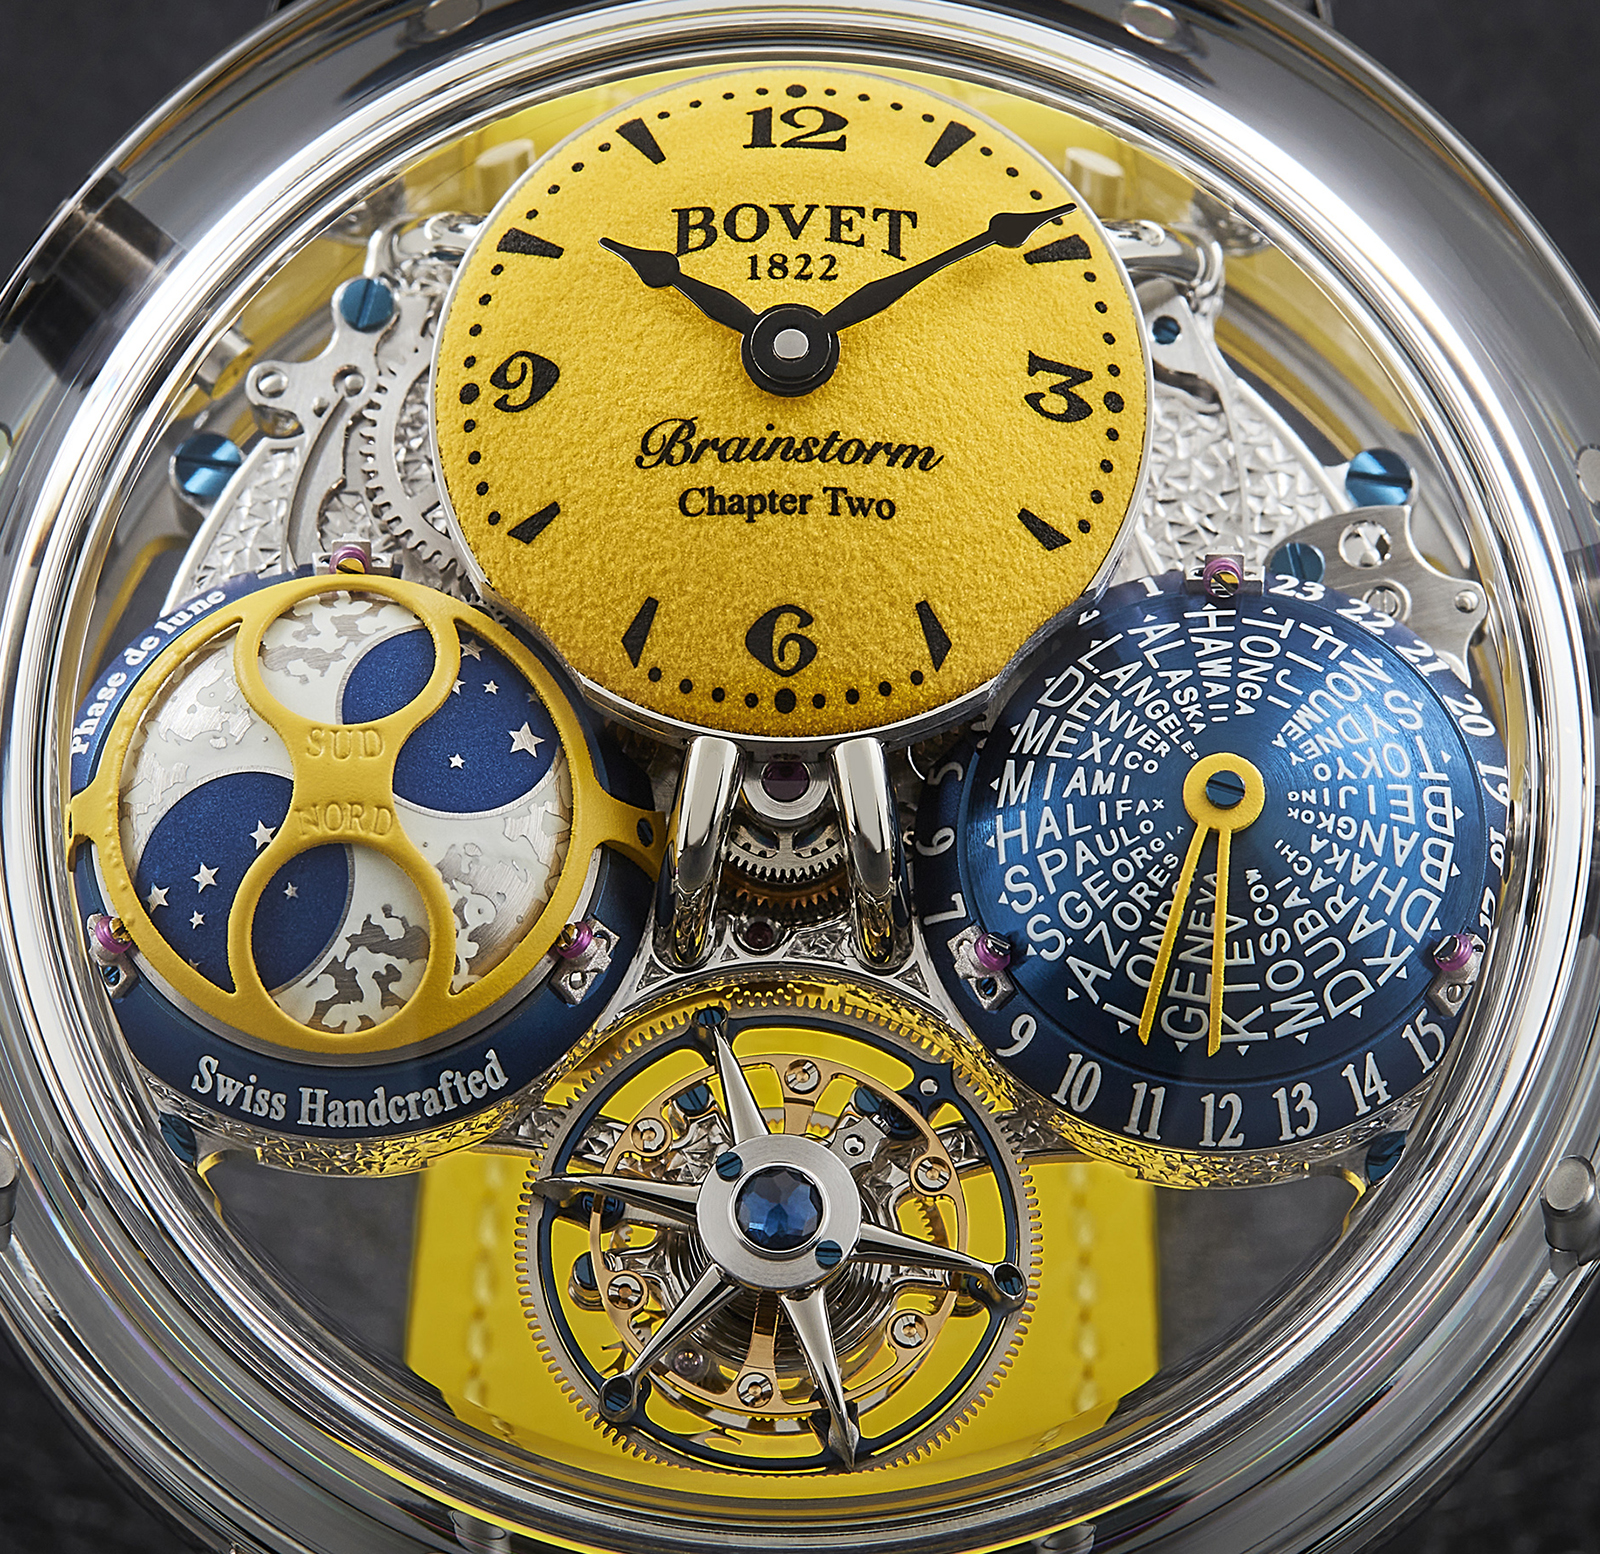 Bovet 1822 Récital 26 Brainstorm Chapter Two Sunshine